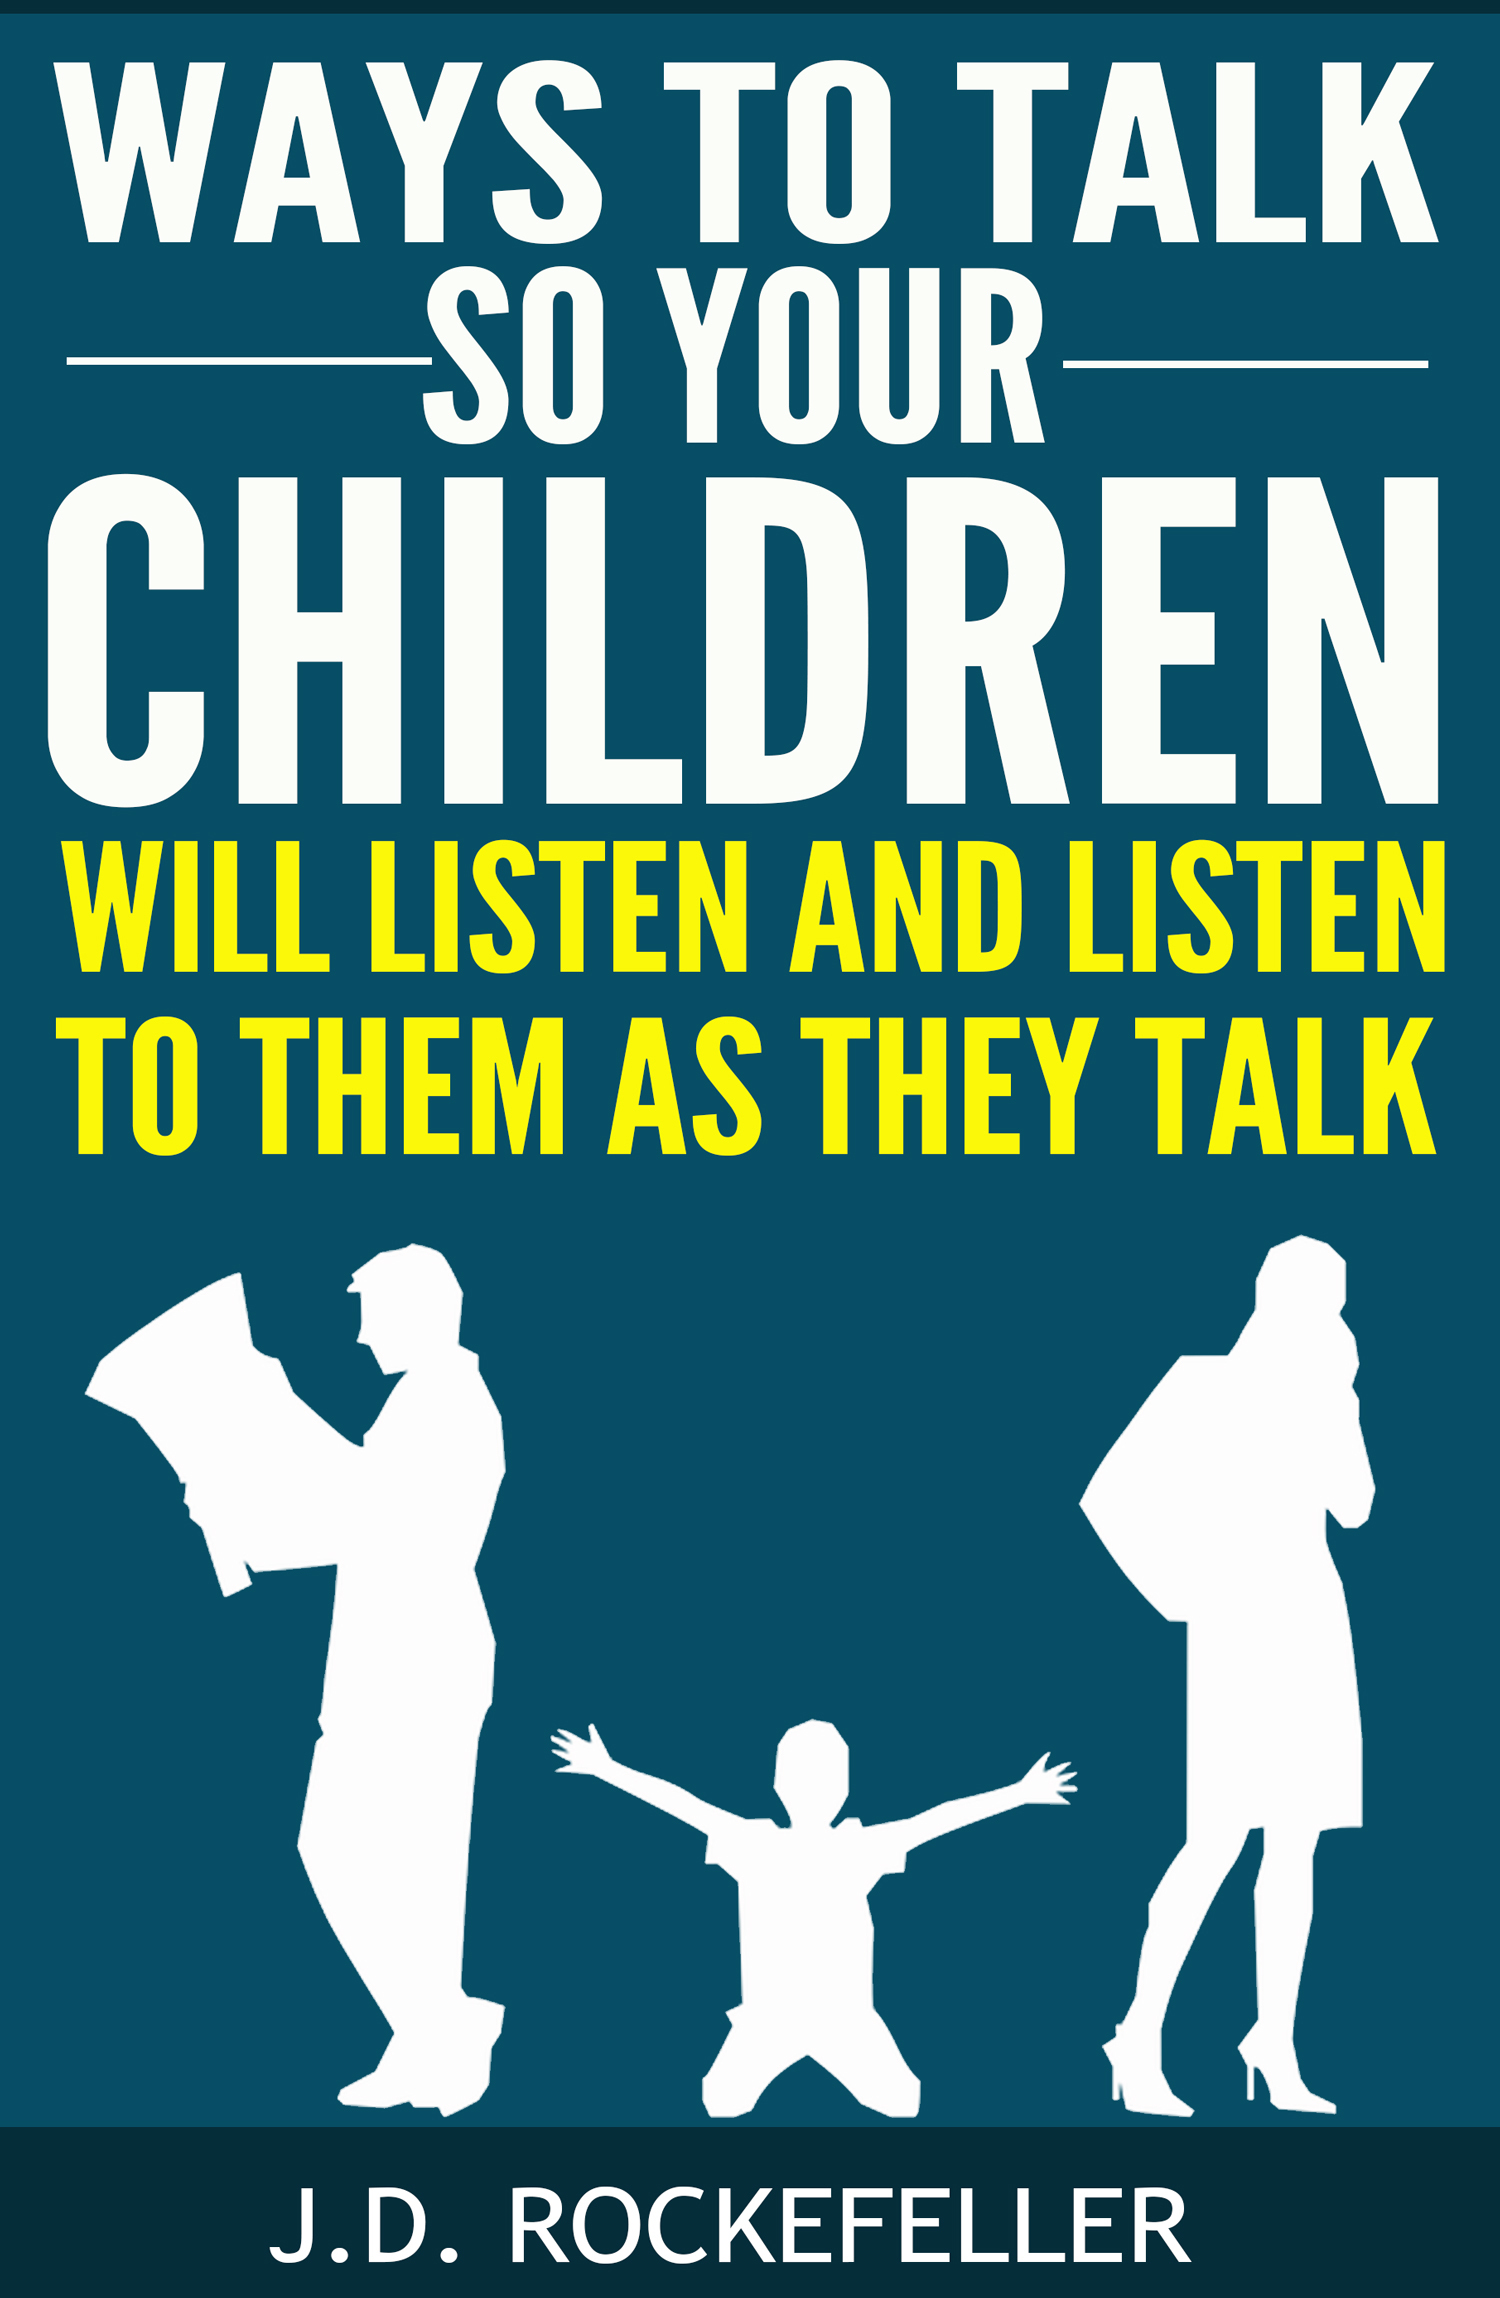 Ways to Talk So Your Children Will Listen and Listen to Them as They Talk  by  J.D. Rockefeller